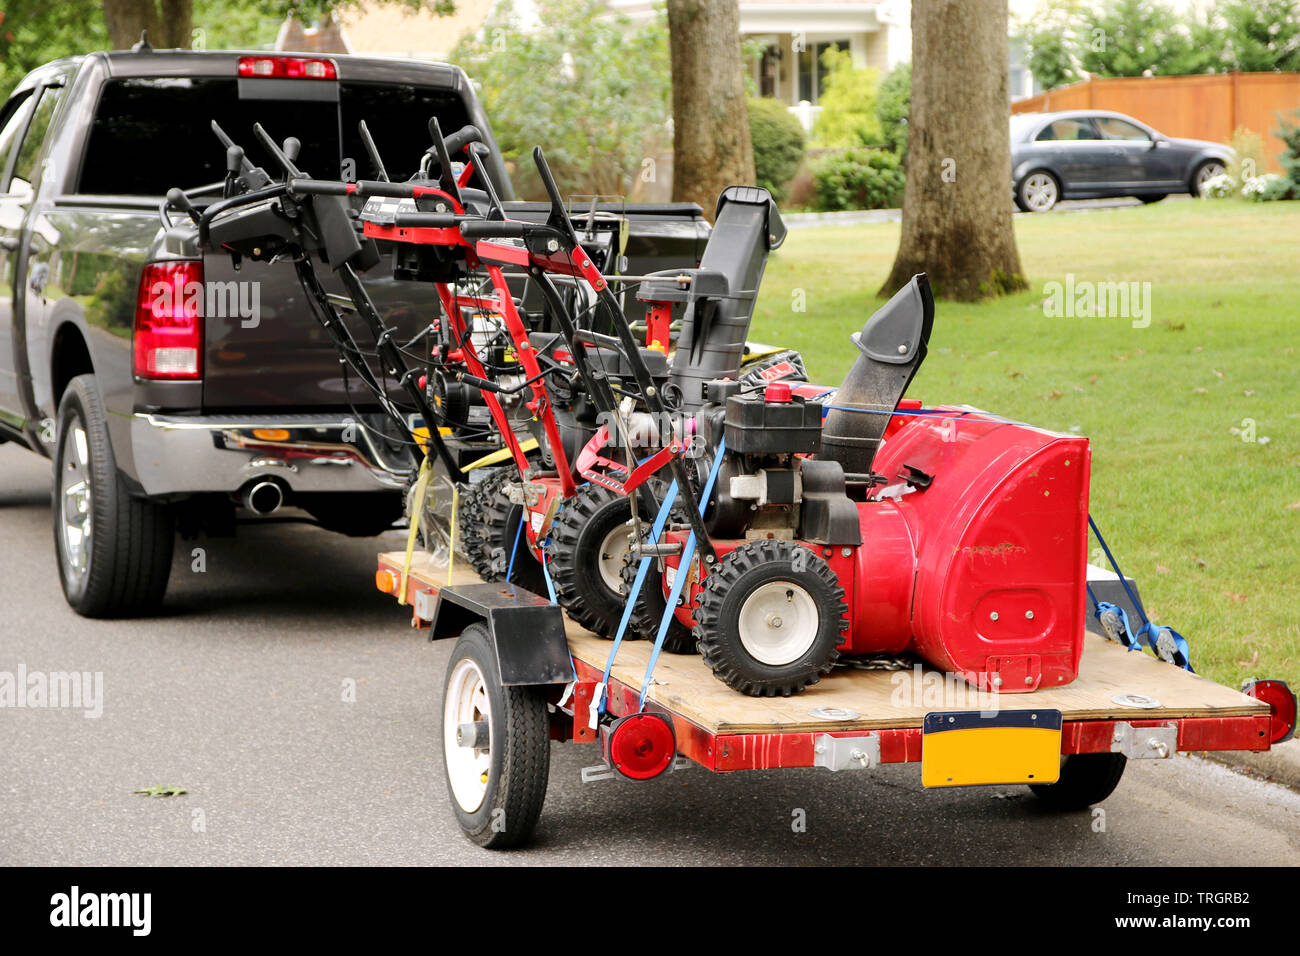 Three snowblowers on a trailer being towed by a truck - Stock Image